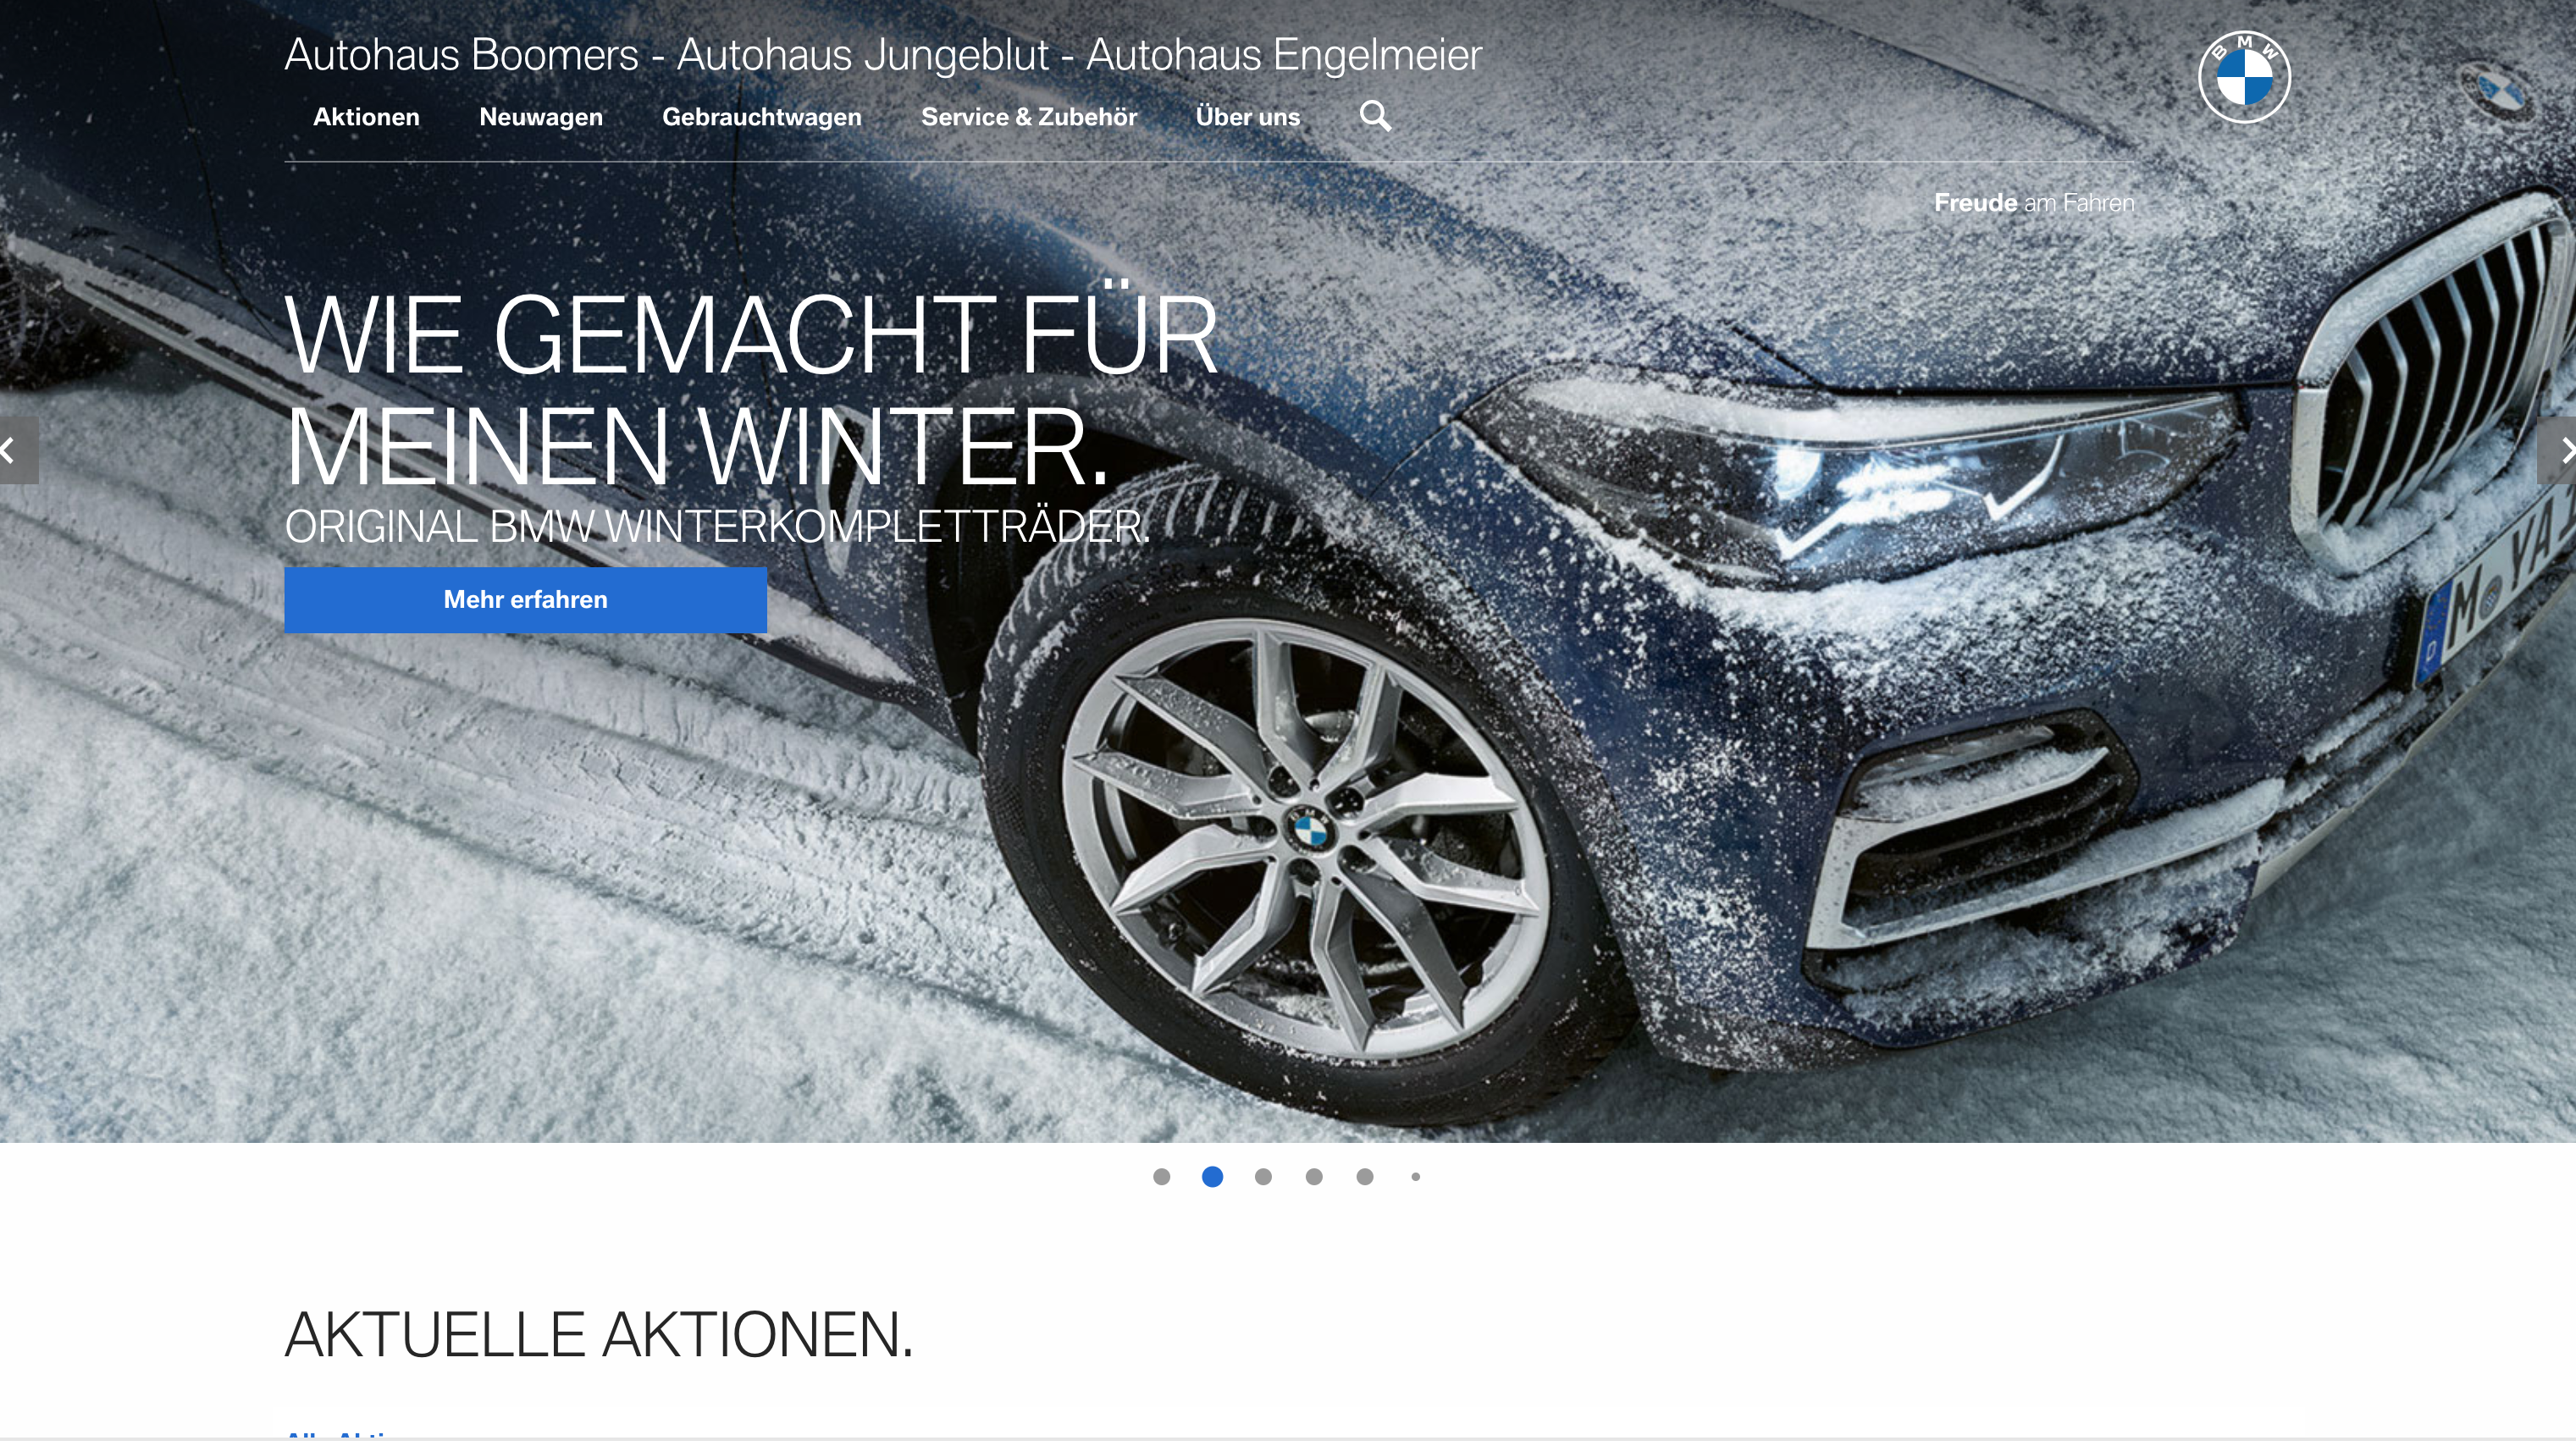 BMW's new branding on show with a German Motorsport microsite